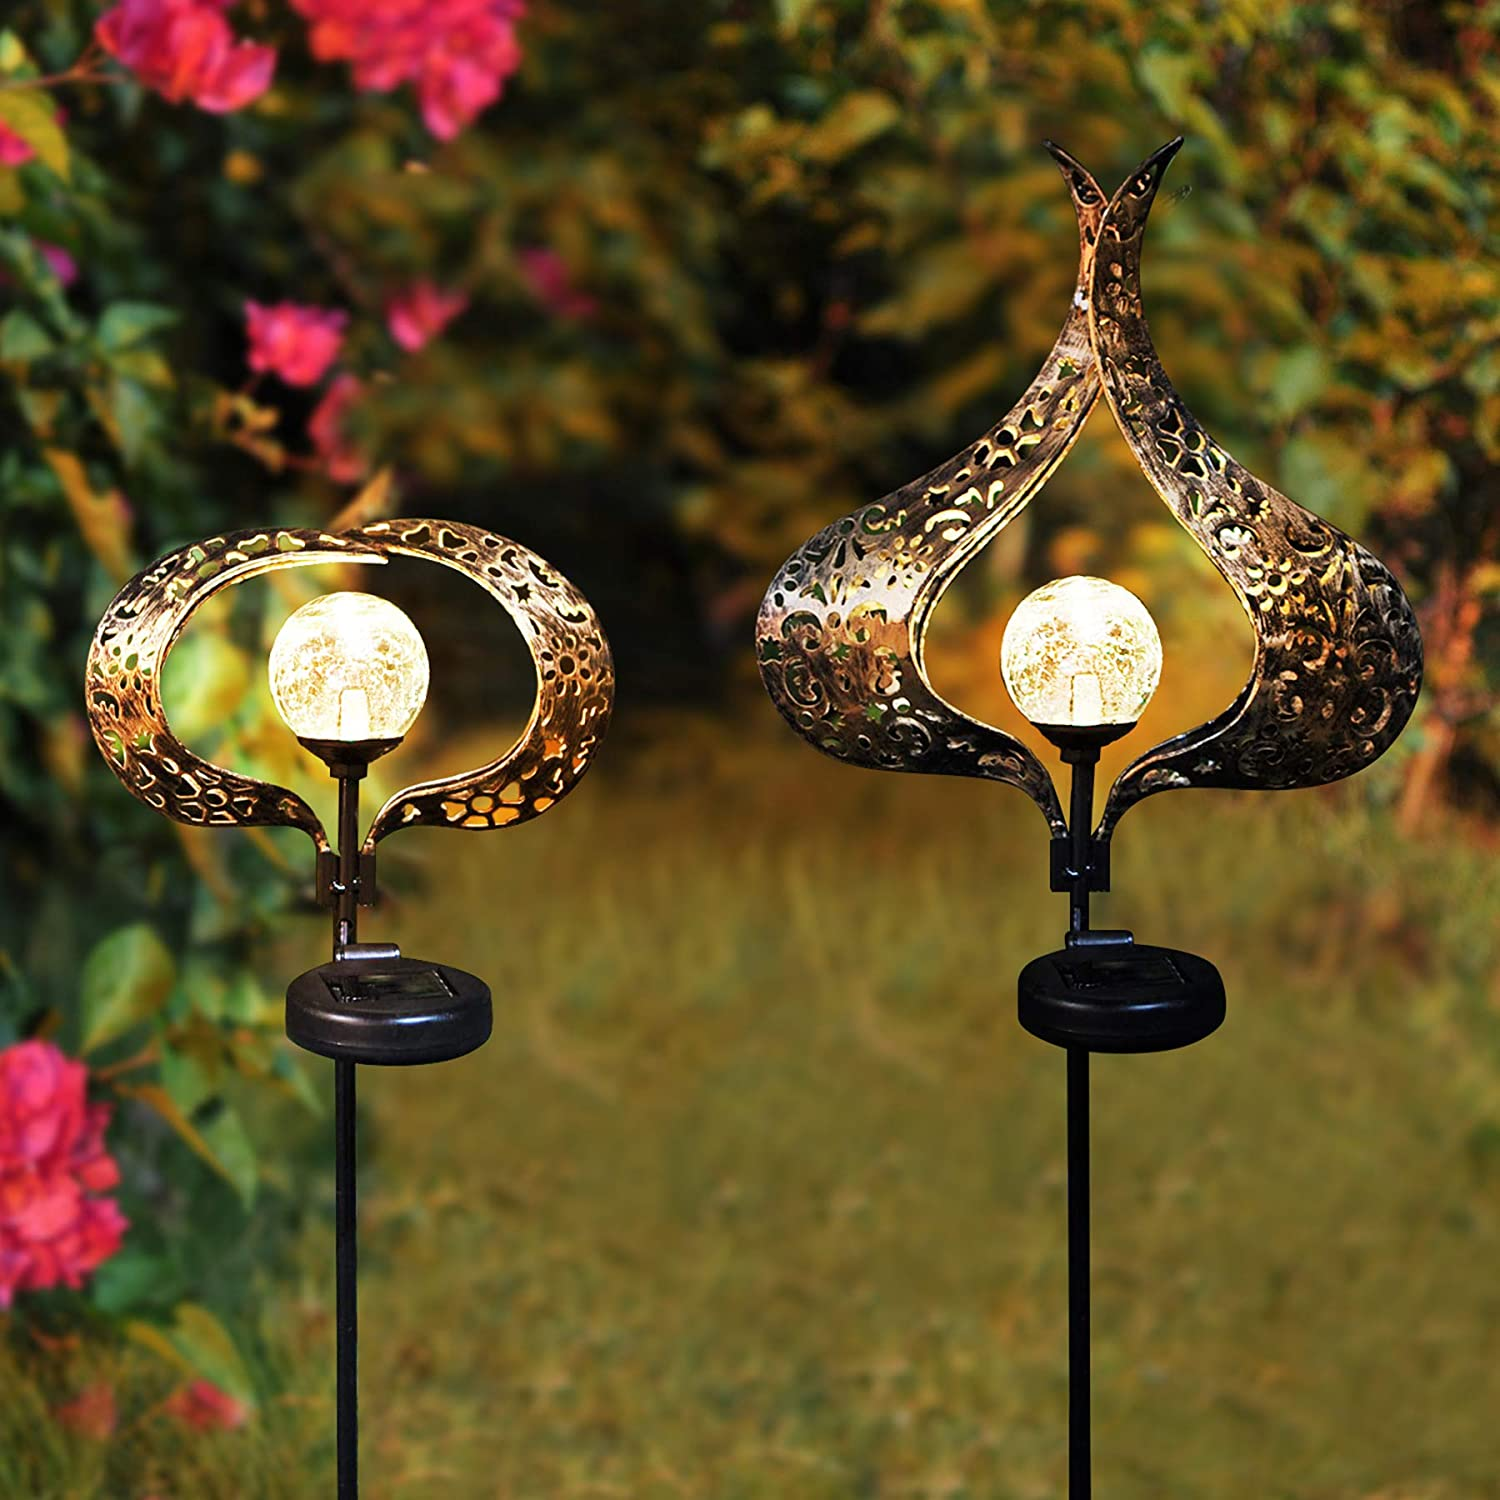 Solar Garden Lights Outdoor Decorative, 2 Pack Metal Solar Stake Lights, Crack Glass Ball Led Waterproof Solar Outdoor Decor for Yard Patio Lawn Pathway Walkway -Warm White